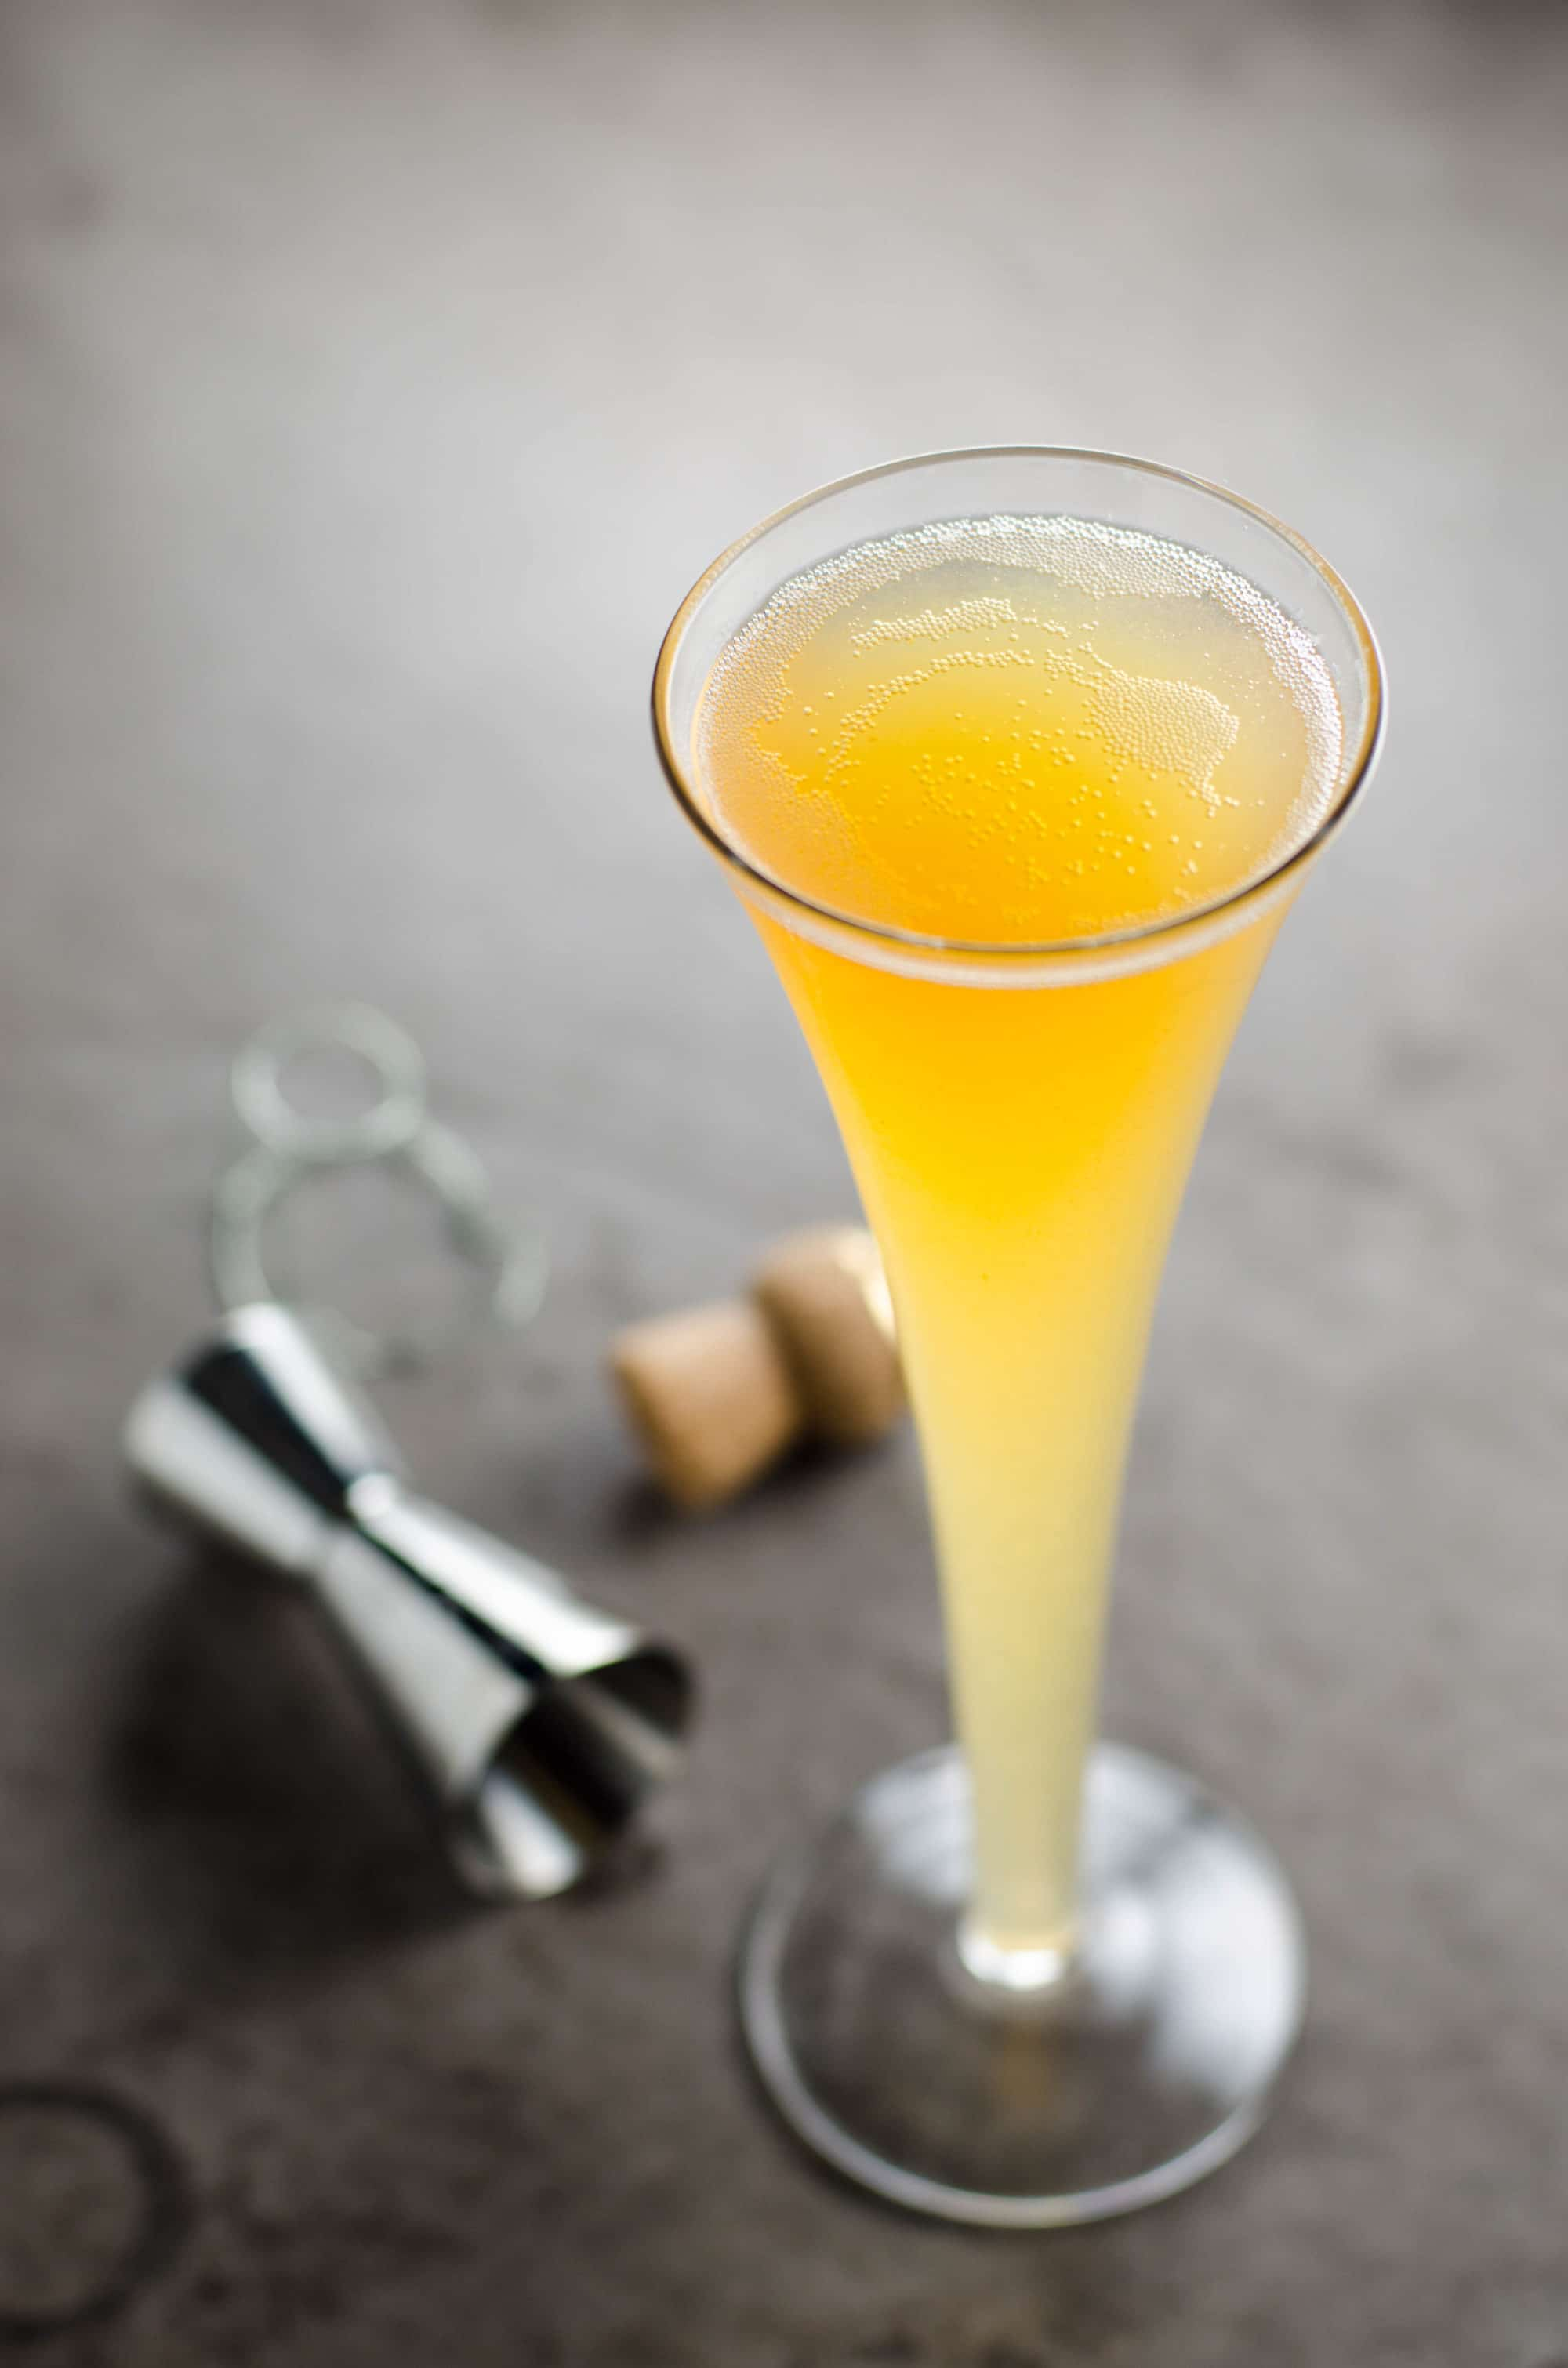 The Fifteen: A Cider, Champagne, and Whiskey Cocktail from Umami Girl. Get the recipe here. -